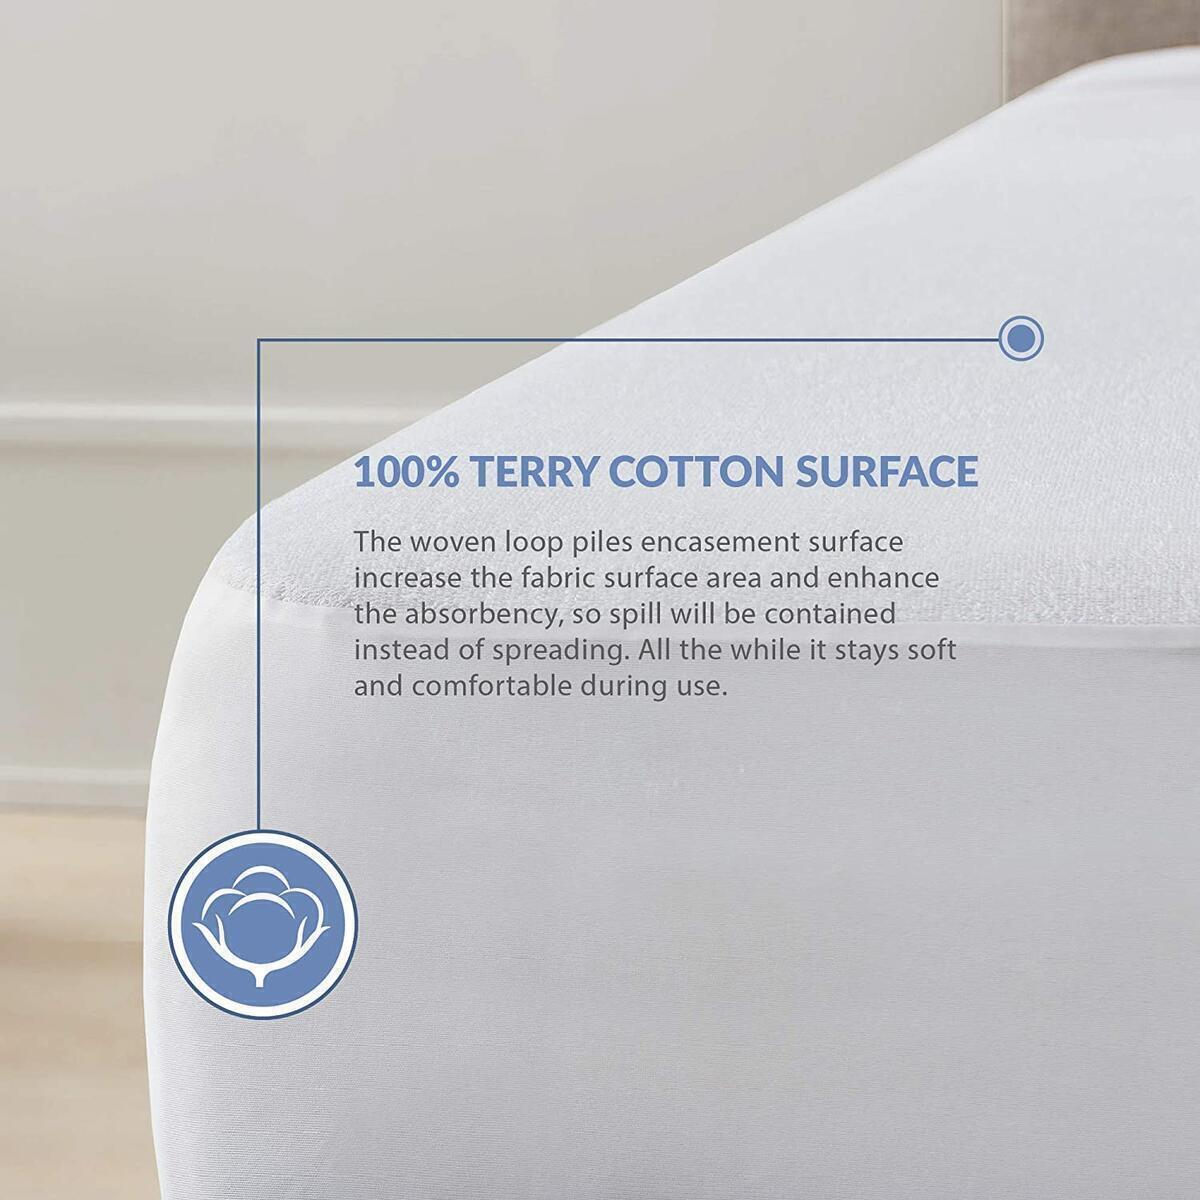 Hypoallergenic Queen Waterproof Mattress Protector | Deep Pocket, Breathable | Premium Fitted Cotton Terry Cover with 3M Scotchgard Stain Release | Urine and Spill Protection- Queen